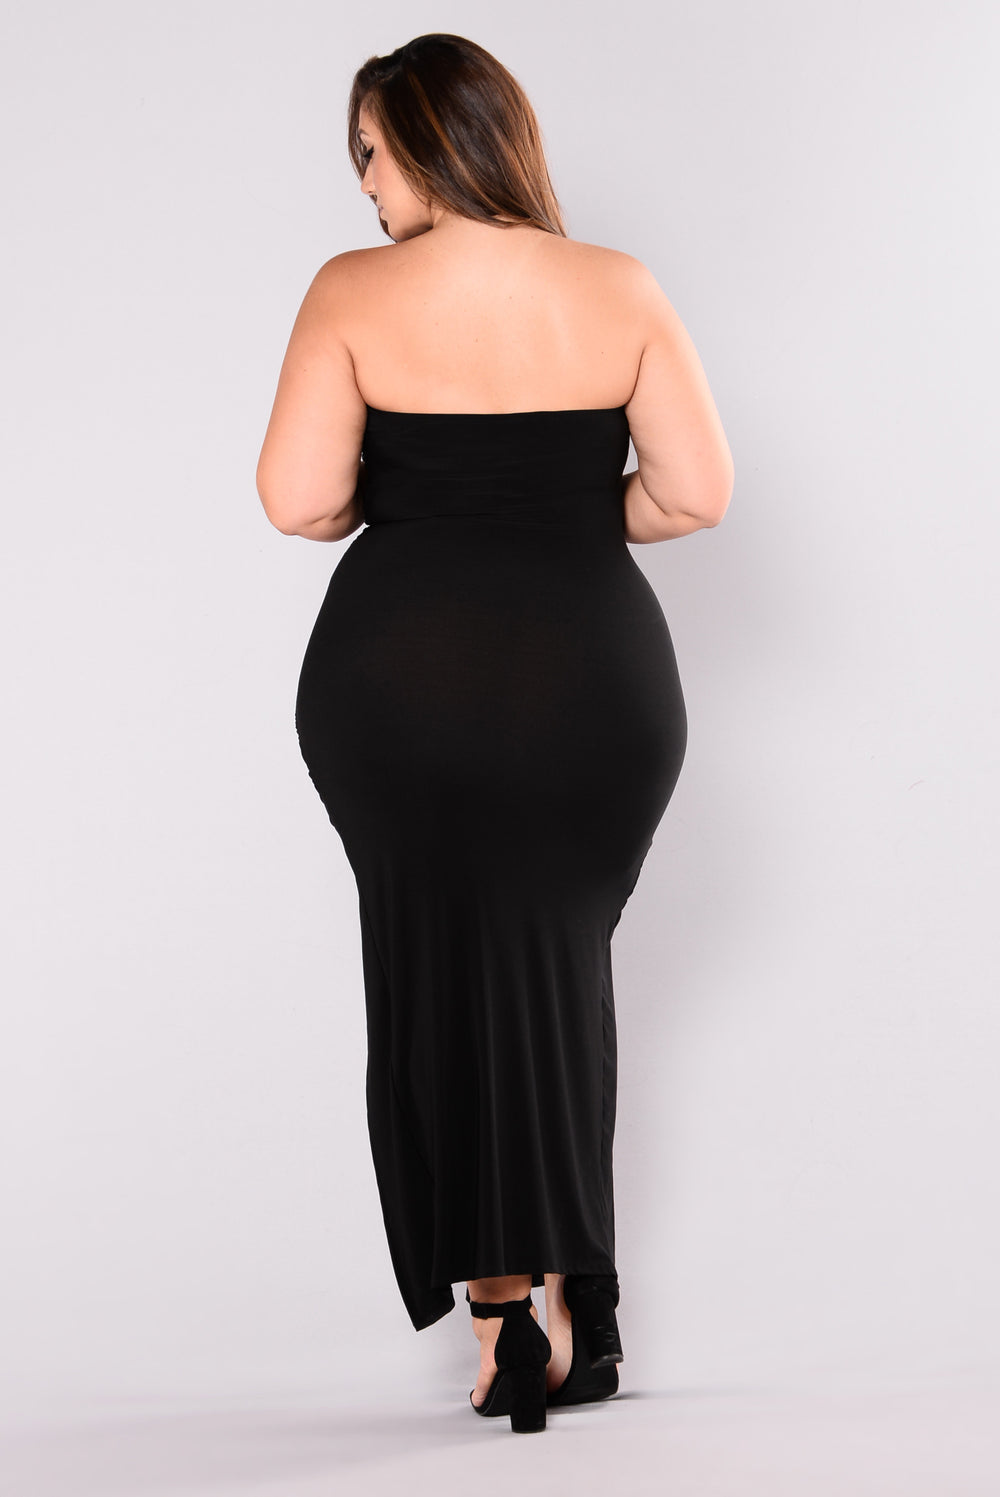 It's A Date Ruched Dress - Black